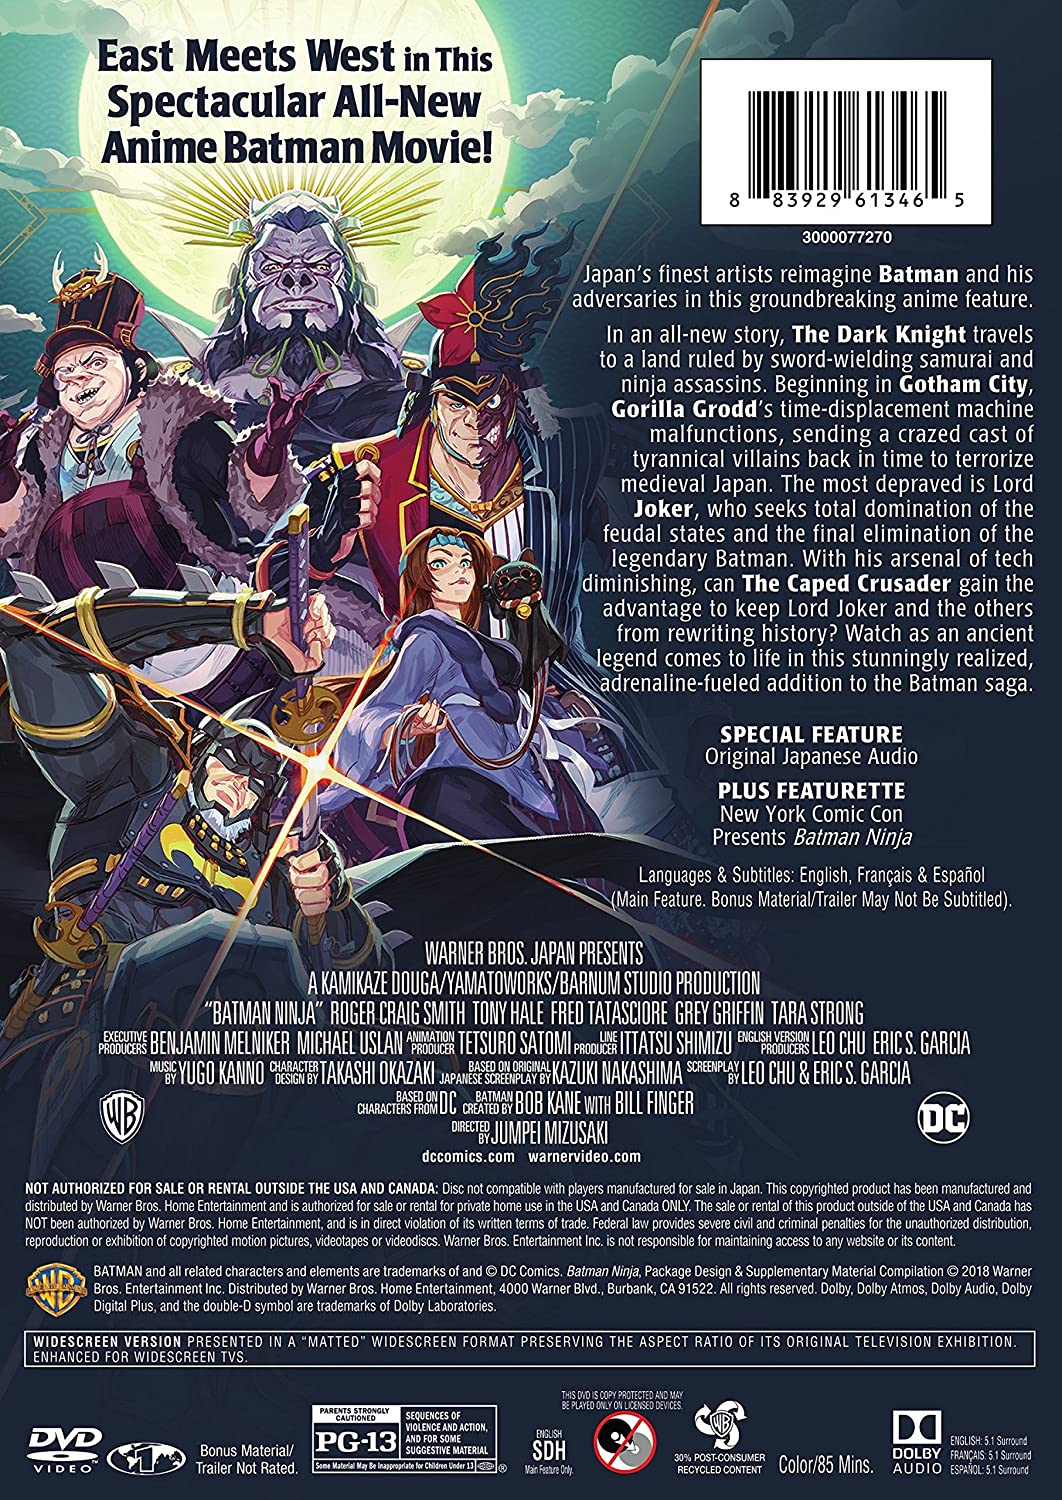 Amazon.com: Batman Ninja: Roger Craig Smith, Fred Tatasciore ...